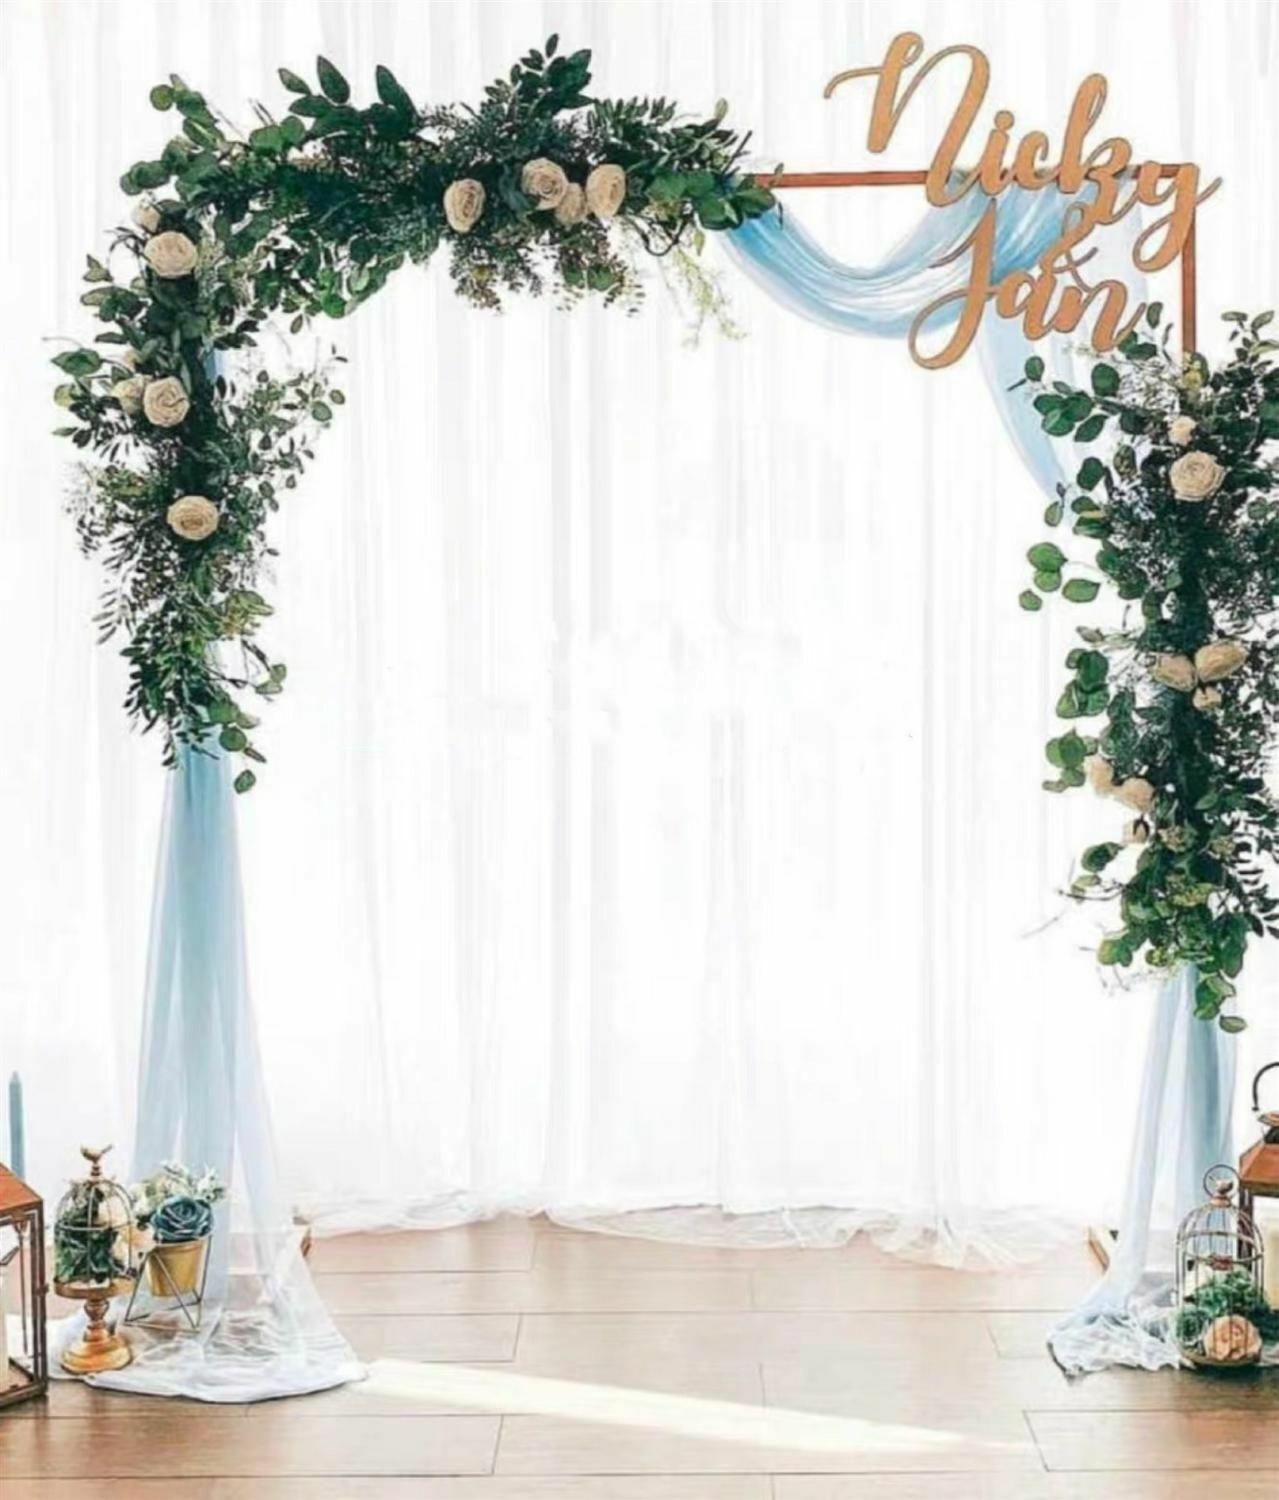 Wrought Iron Gothic Arch for Climbing Flowers Wonderful Wedding Arbor